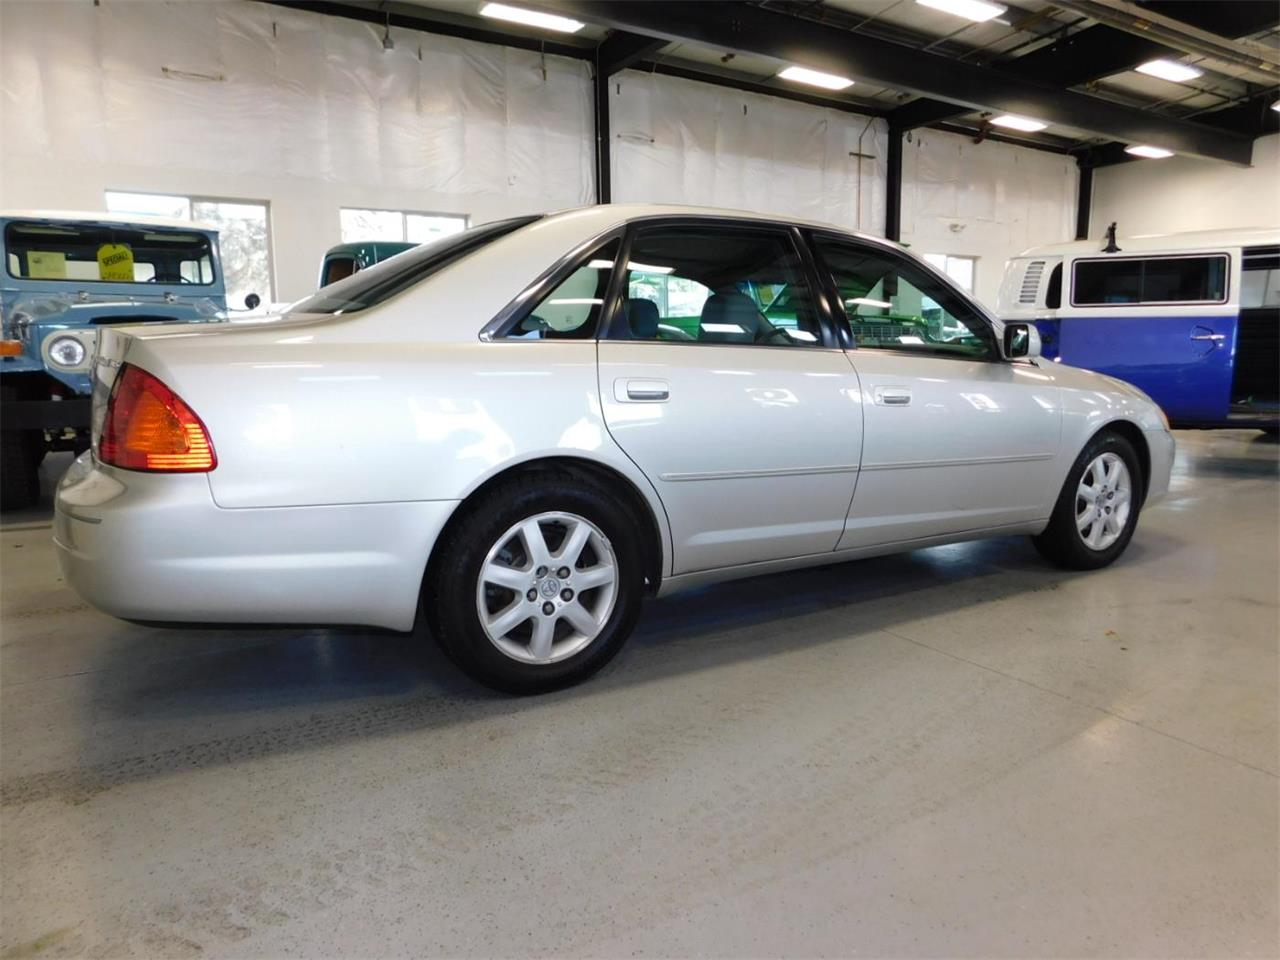 Large Picture of 2002 Toyota Avalon located in Bend Oregon - $4,995.00 - MO09